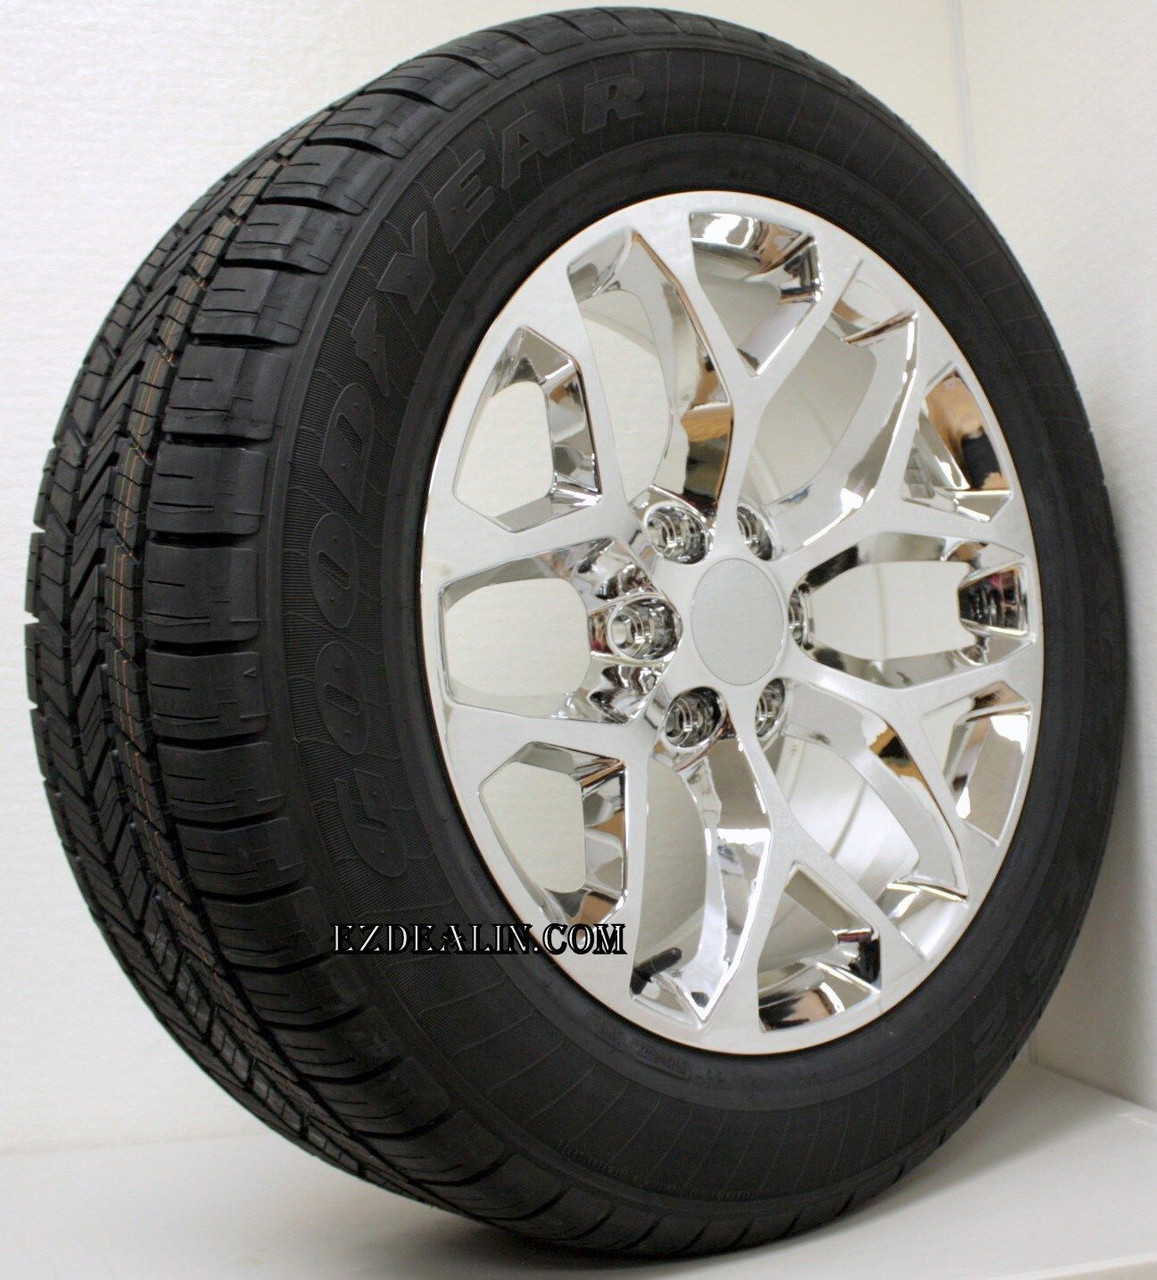 "Chrome 20"" Snowflake Wheels With Goodyear Tires for Chevy Silverado, Tahoe, Suburban - New Set of 4"